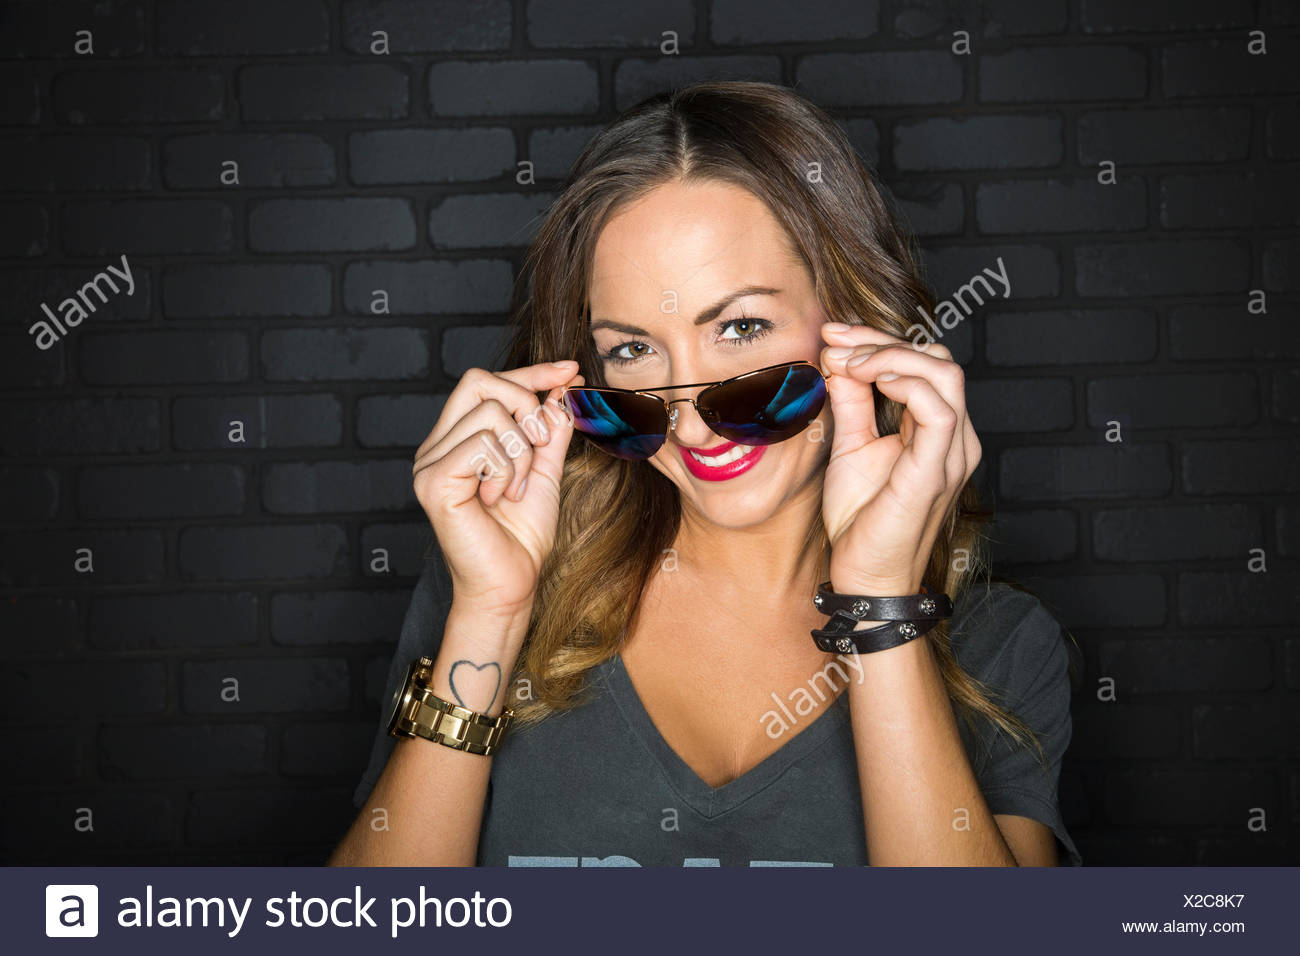 Portrait of flirtatious woman peering from behind sunglasses - Stock Image